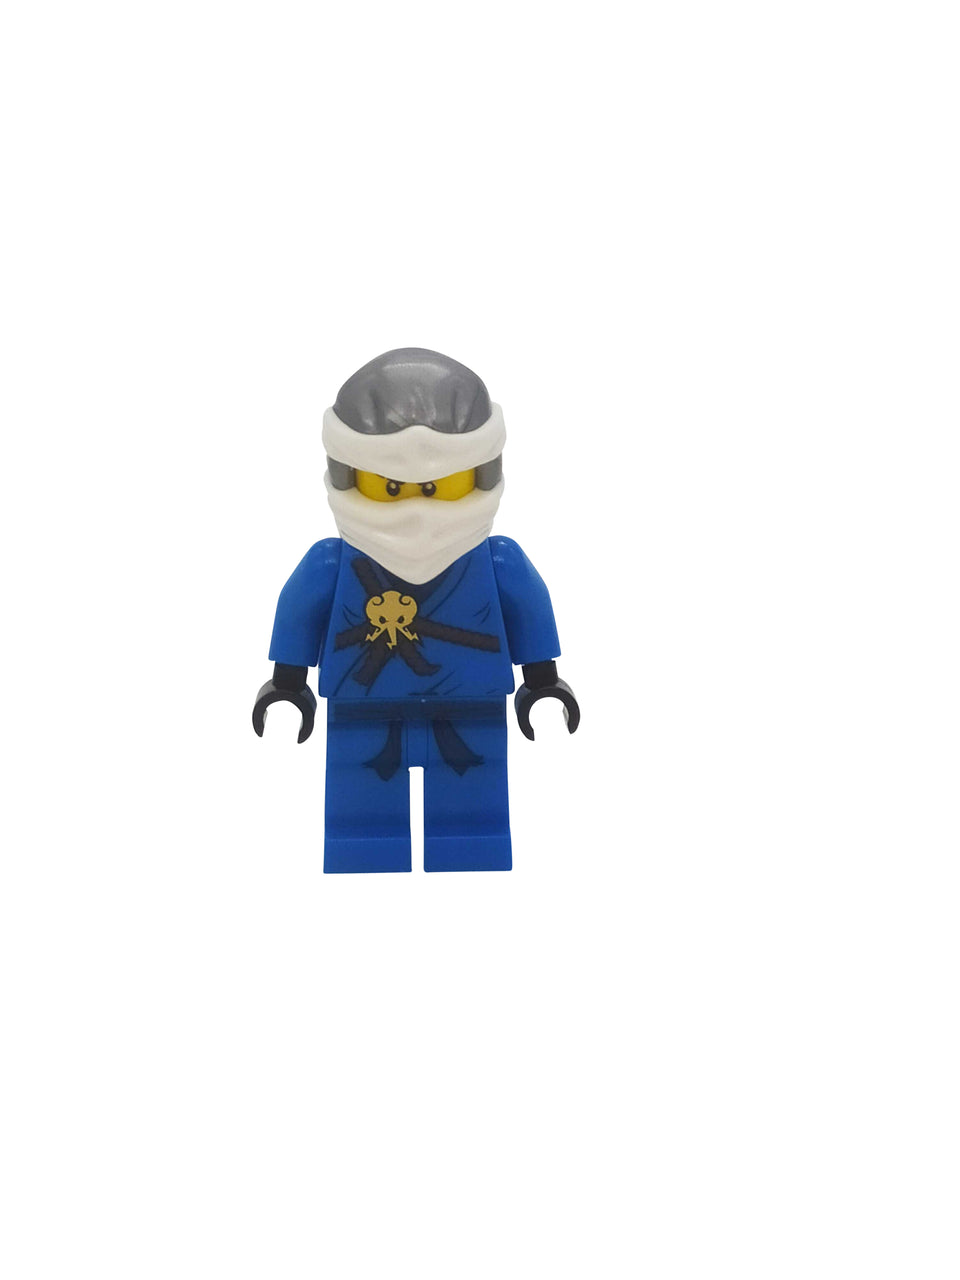 Blue ninja figure with gray and white mask - Lego